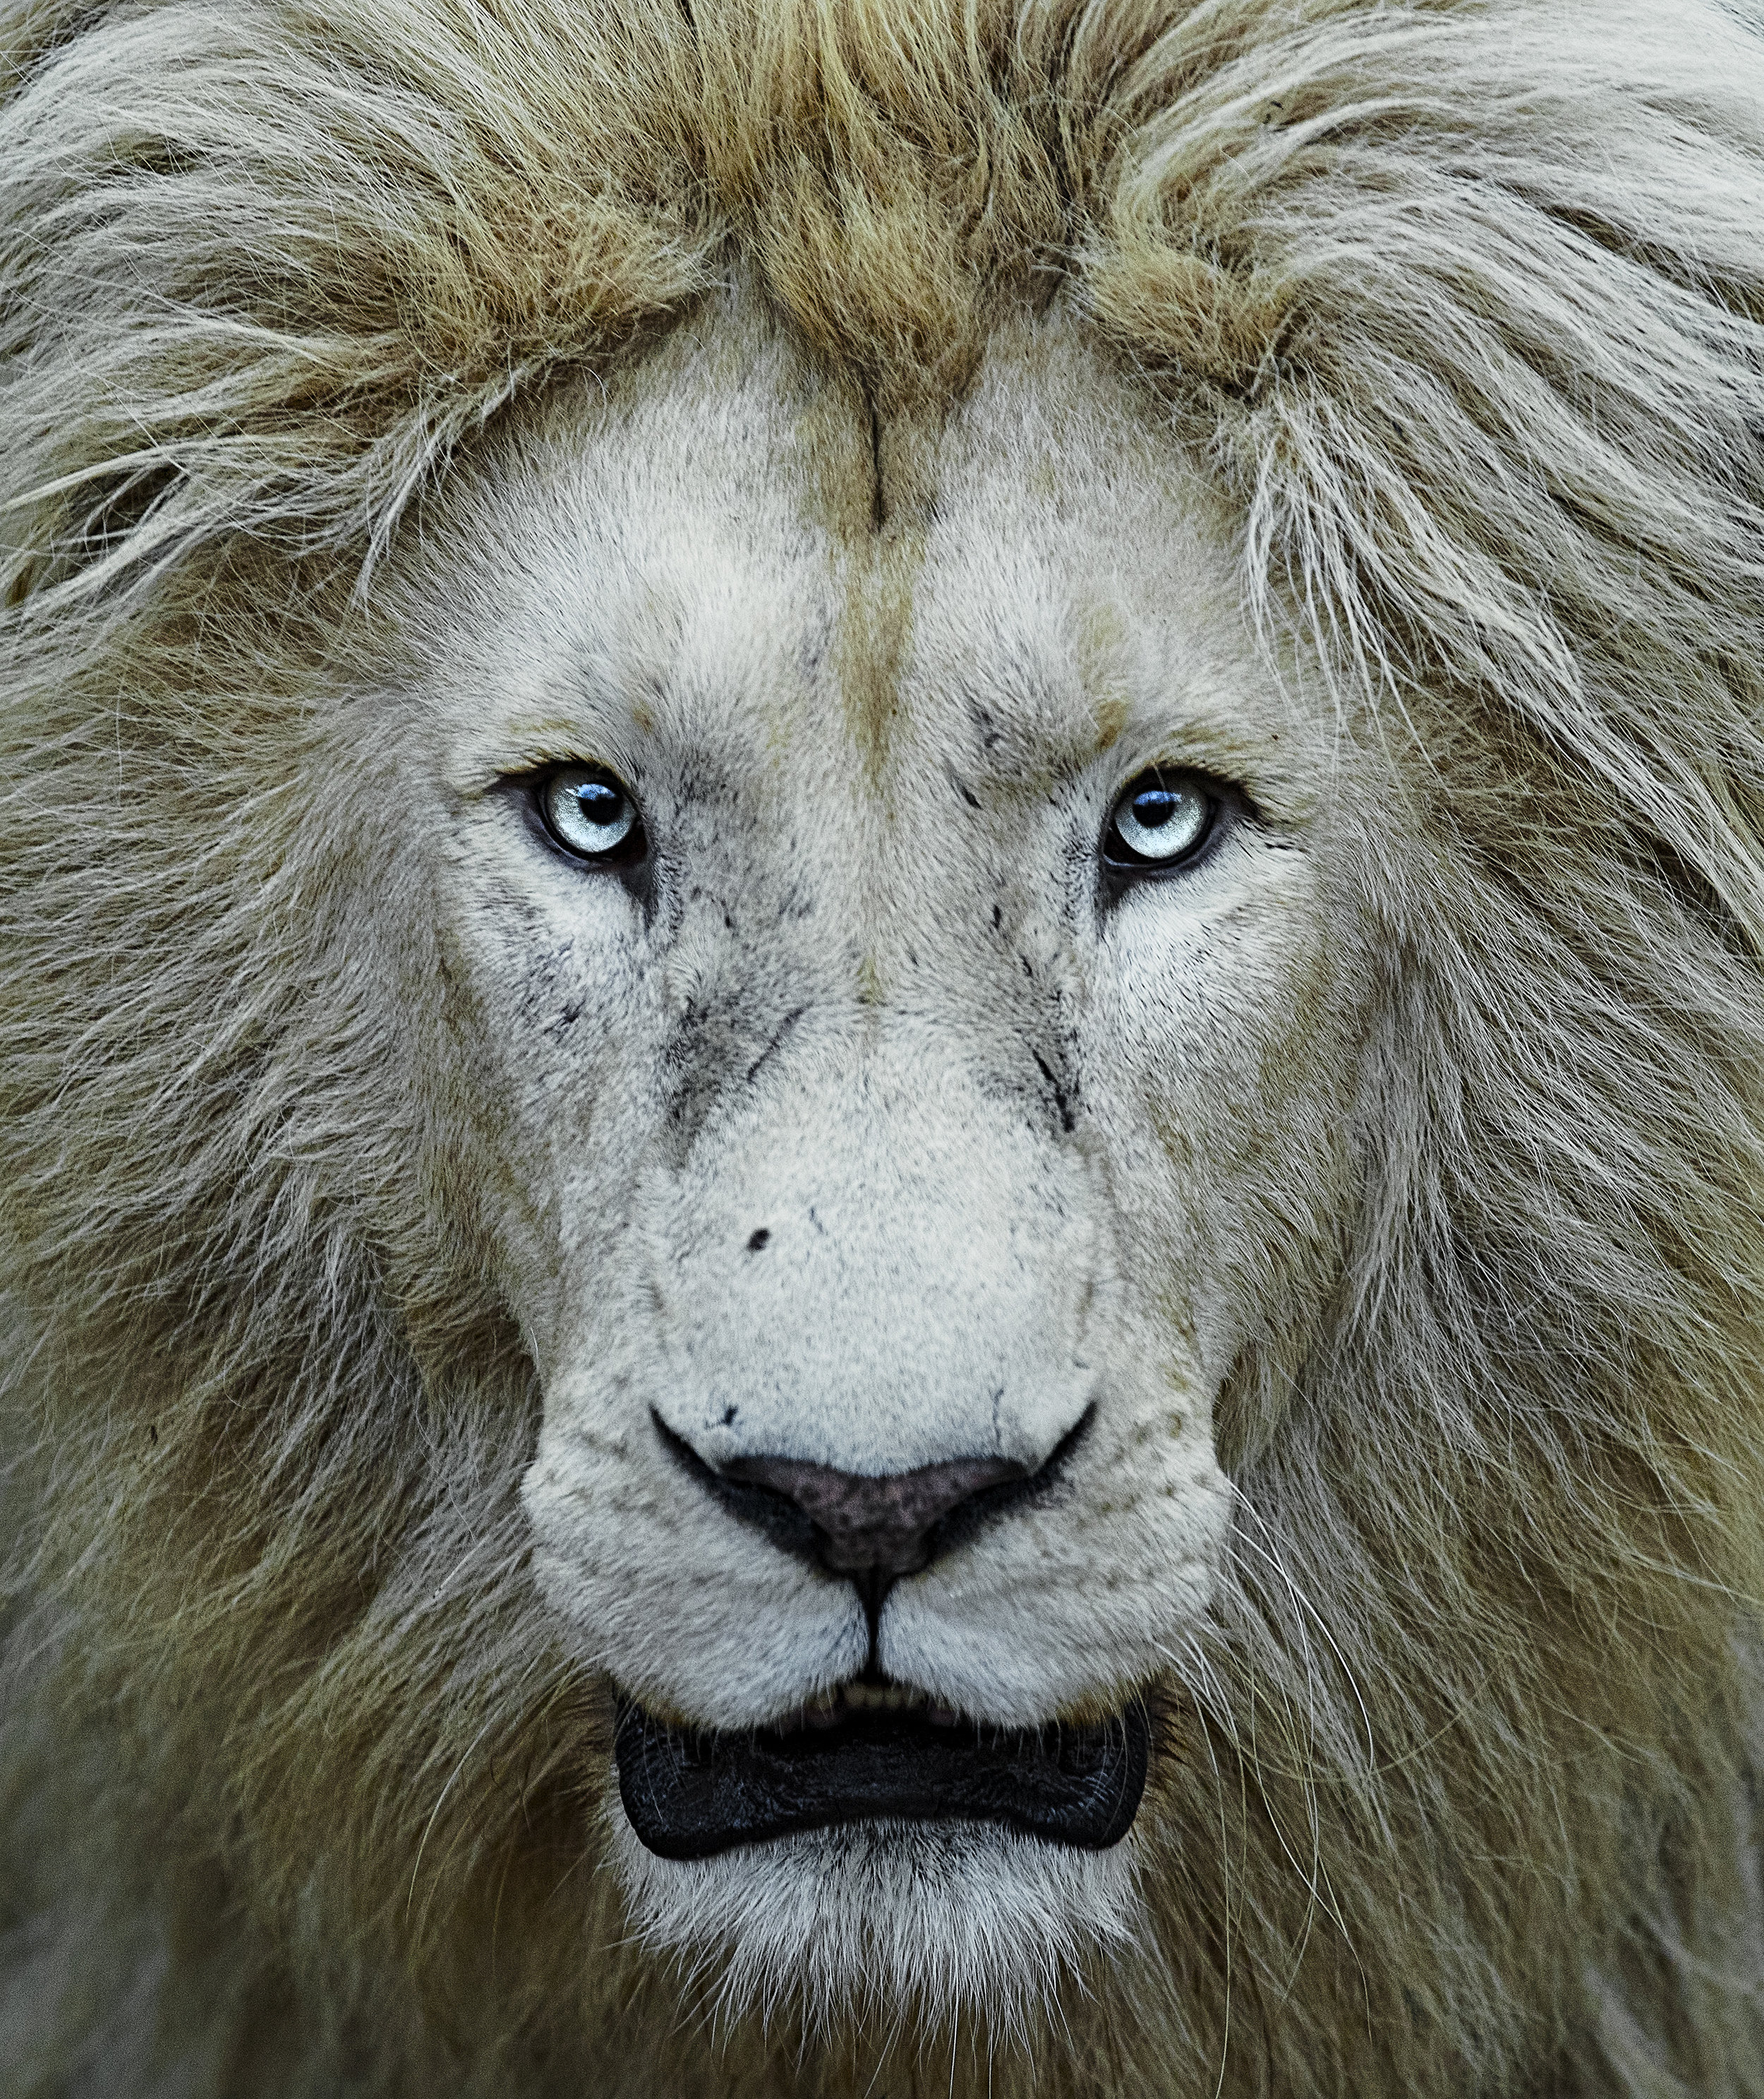 Simon+Needham+Humanitarian+Photography+Lions+of+Africa+21.jpg